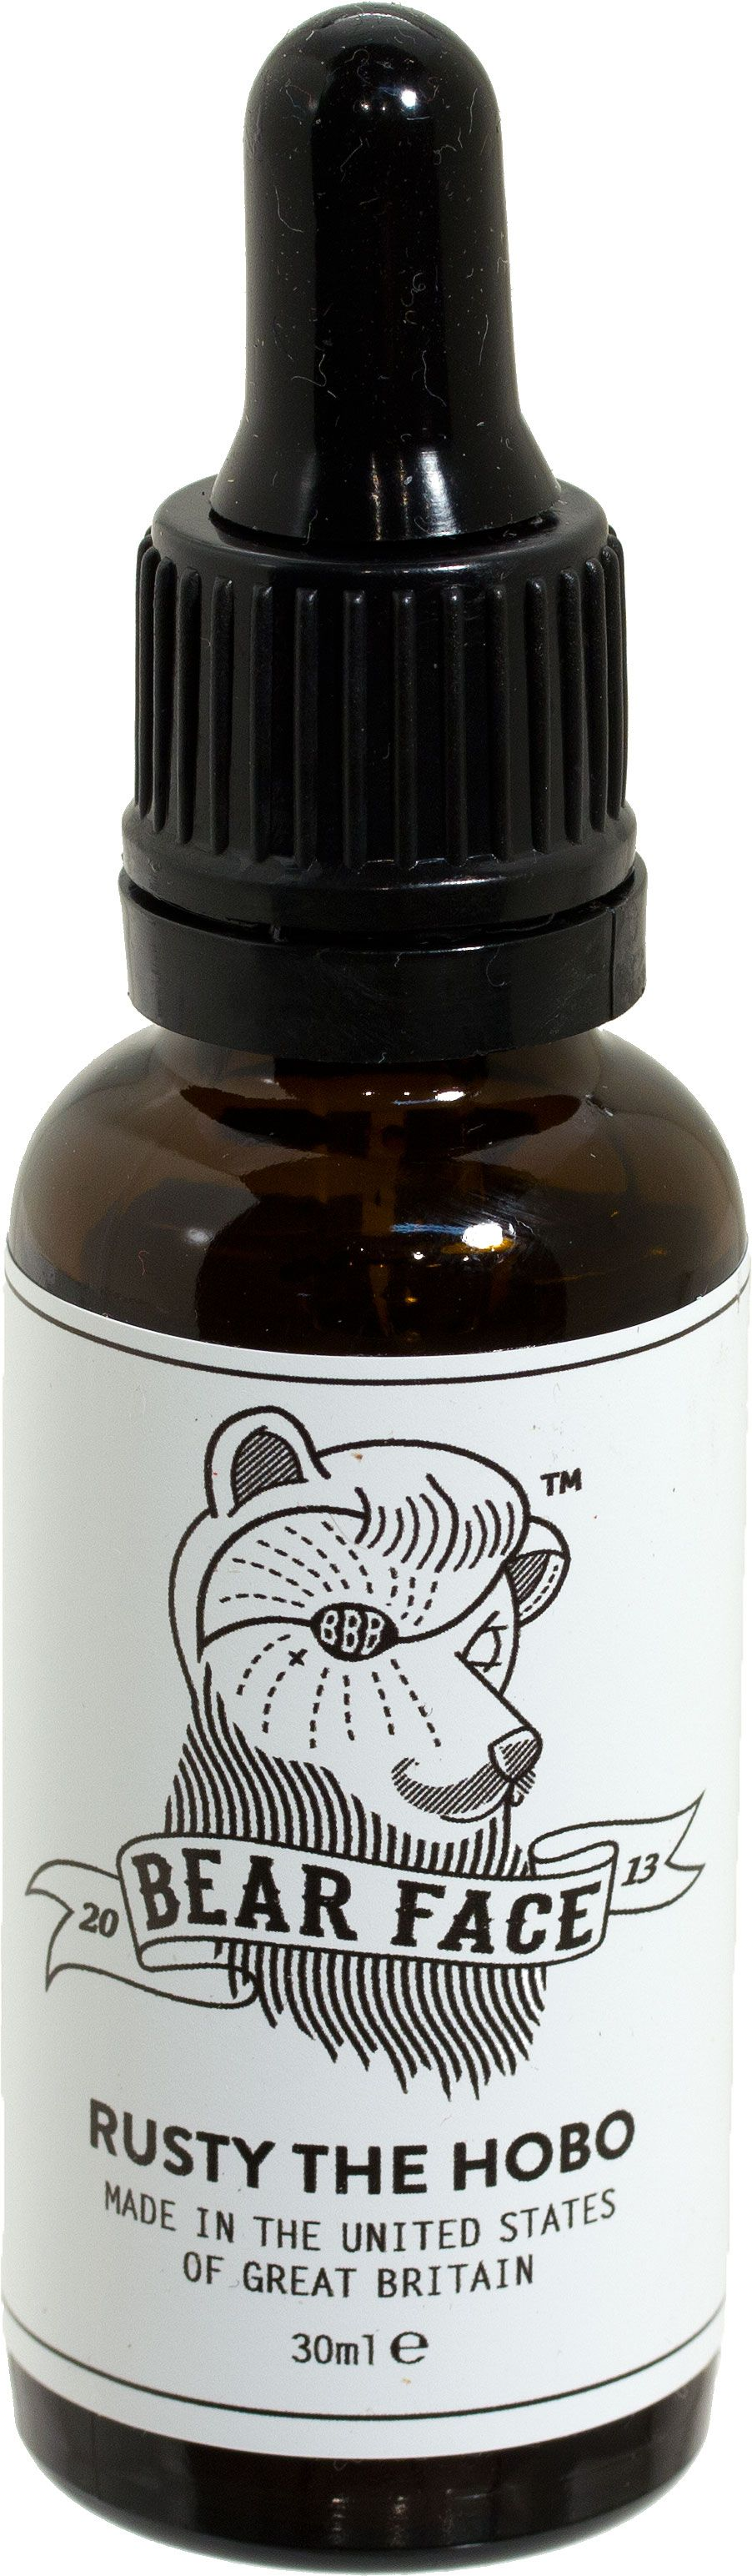 Bear Face Rusty Beard Oil for Acne and Problem Faces, 30ml Eye Dropper Bottle